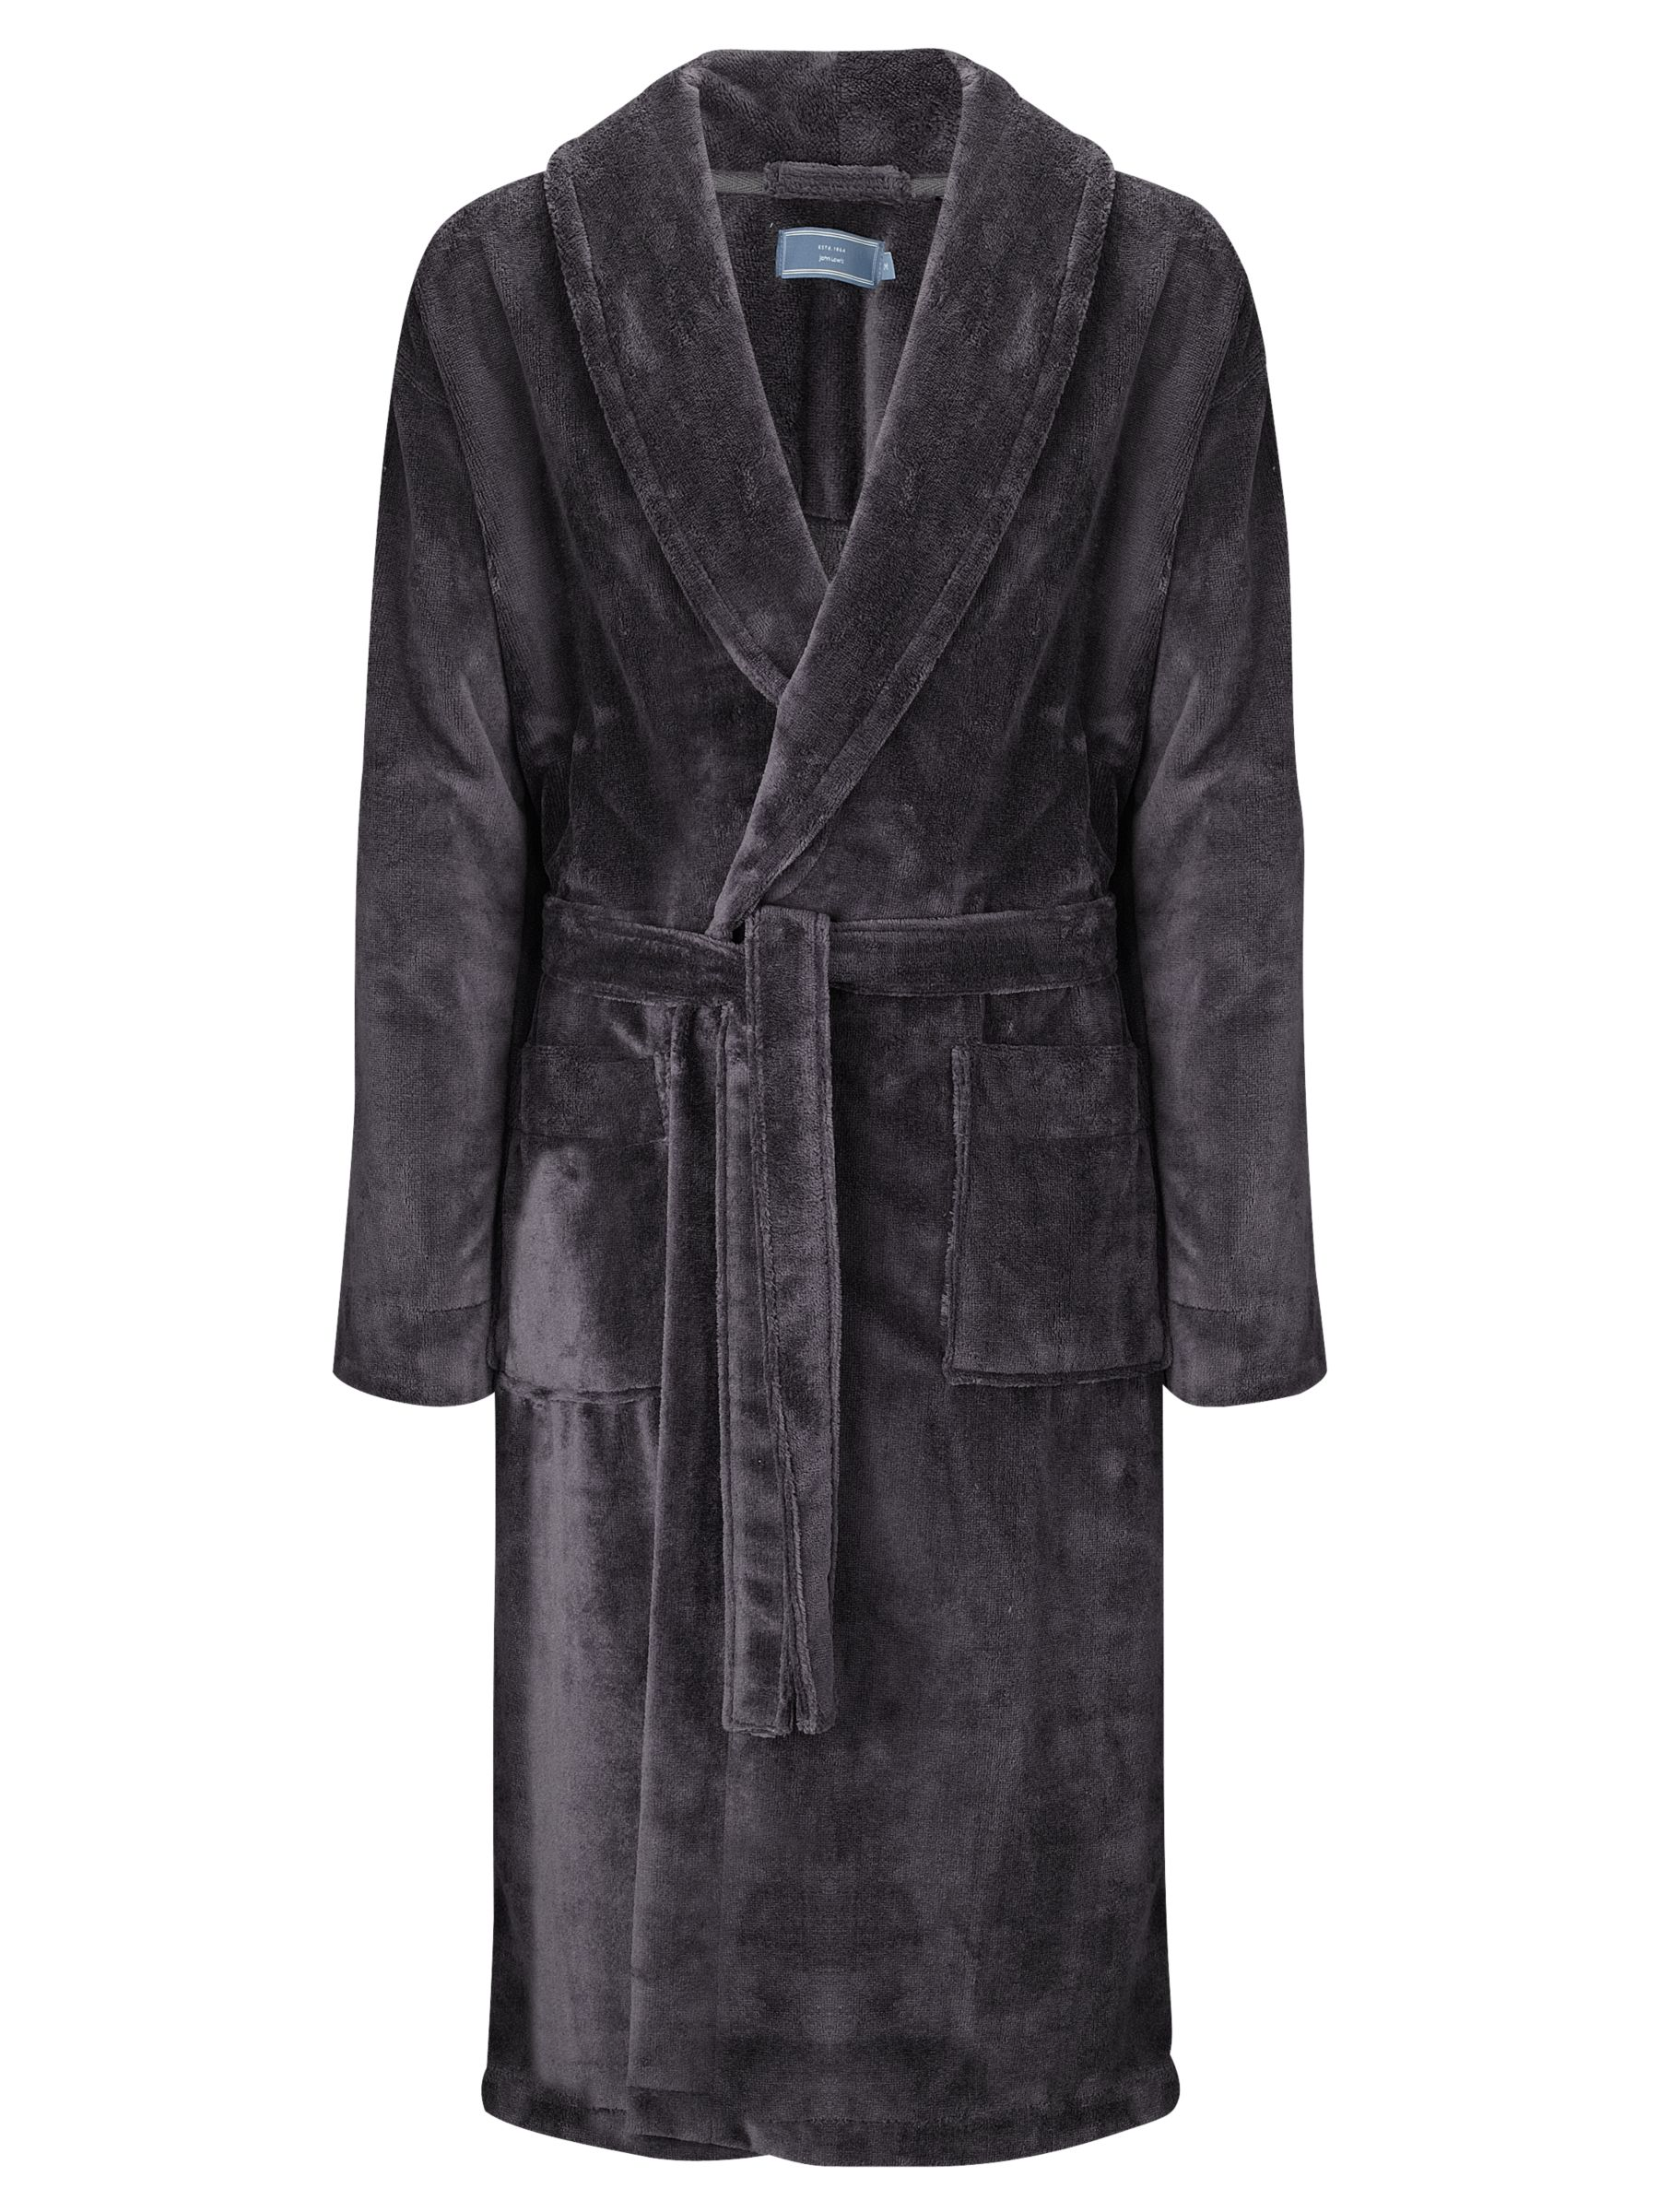 John Lewis Super Soft Towelling Robe, Charcoal